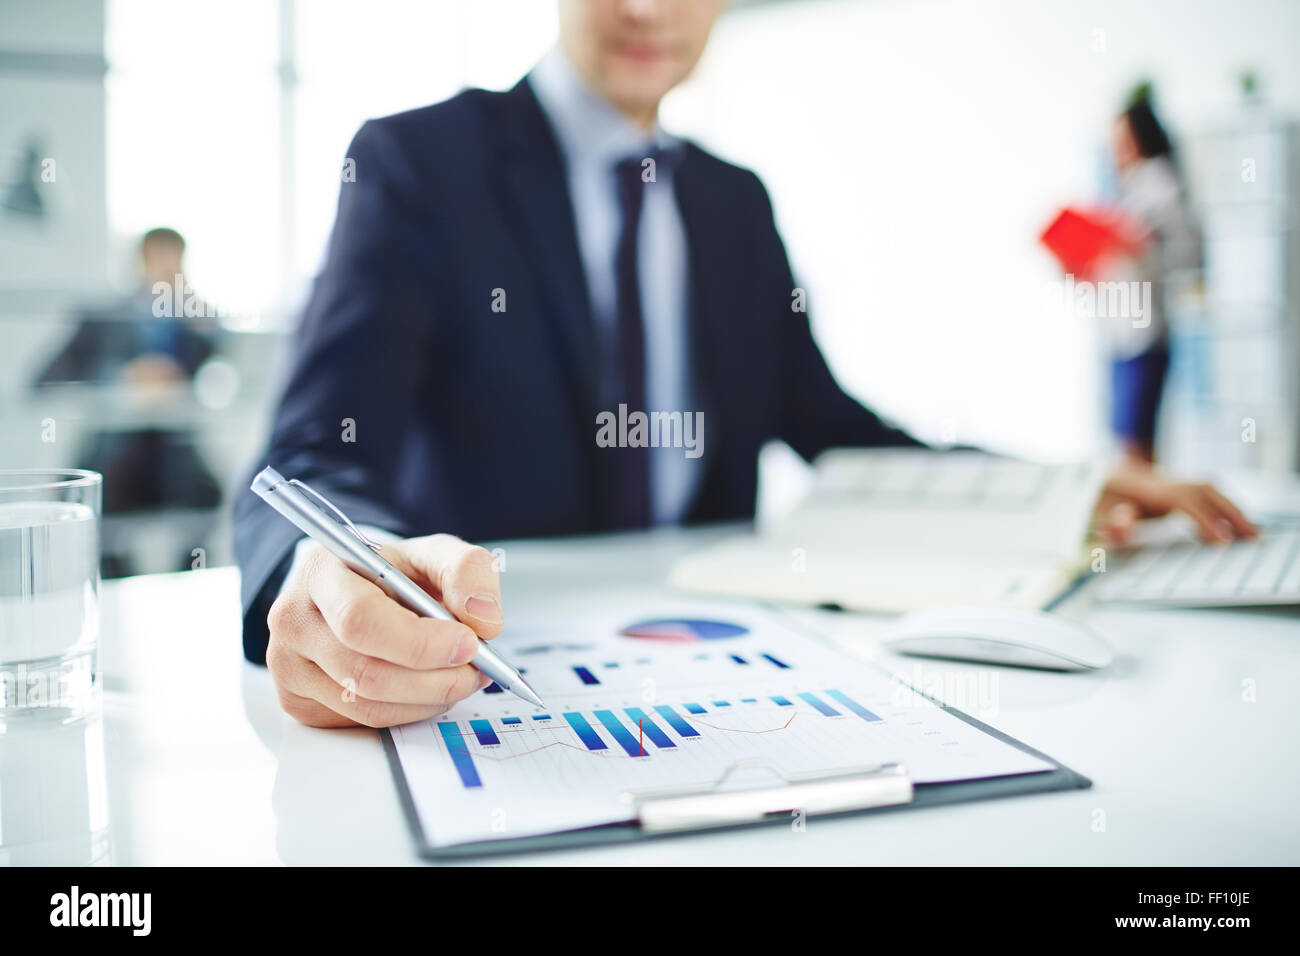 Young businessman pointing at chart in document in office - Stock Image